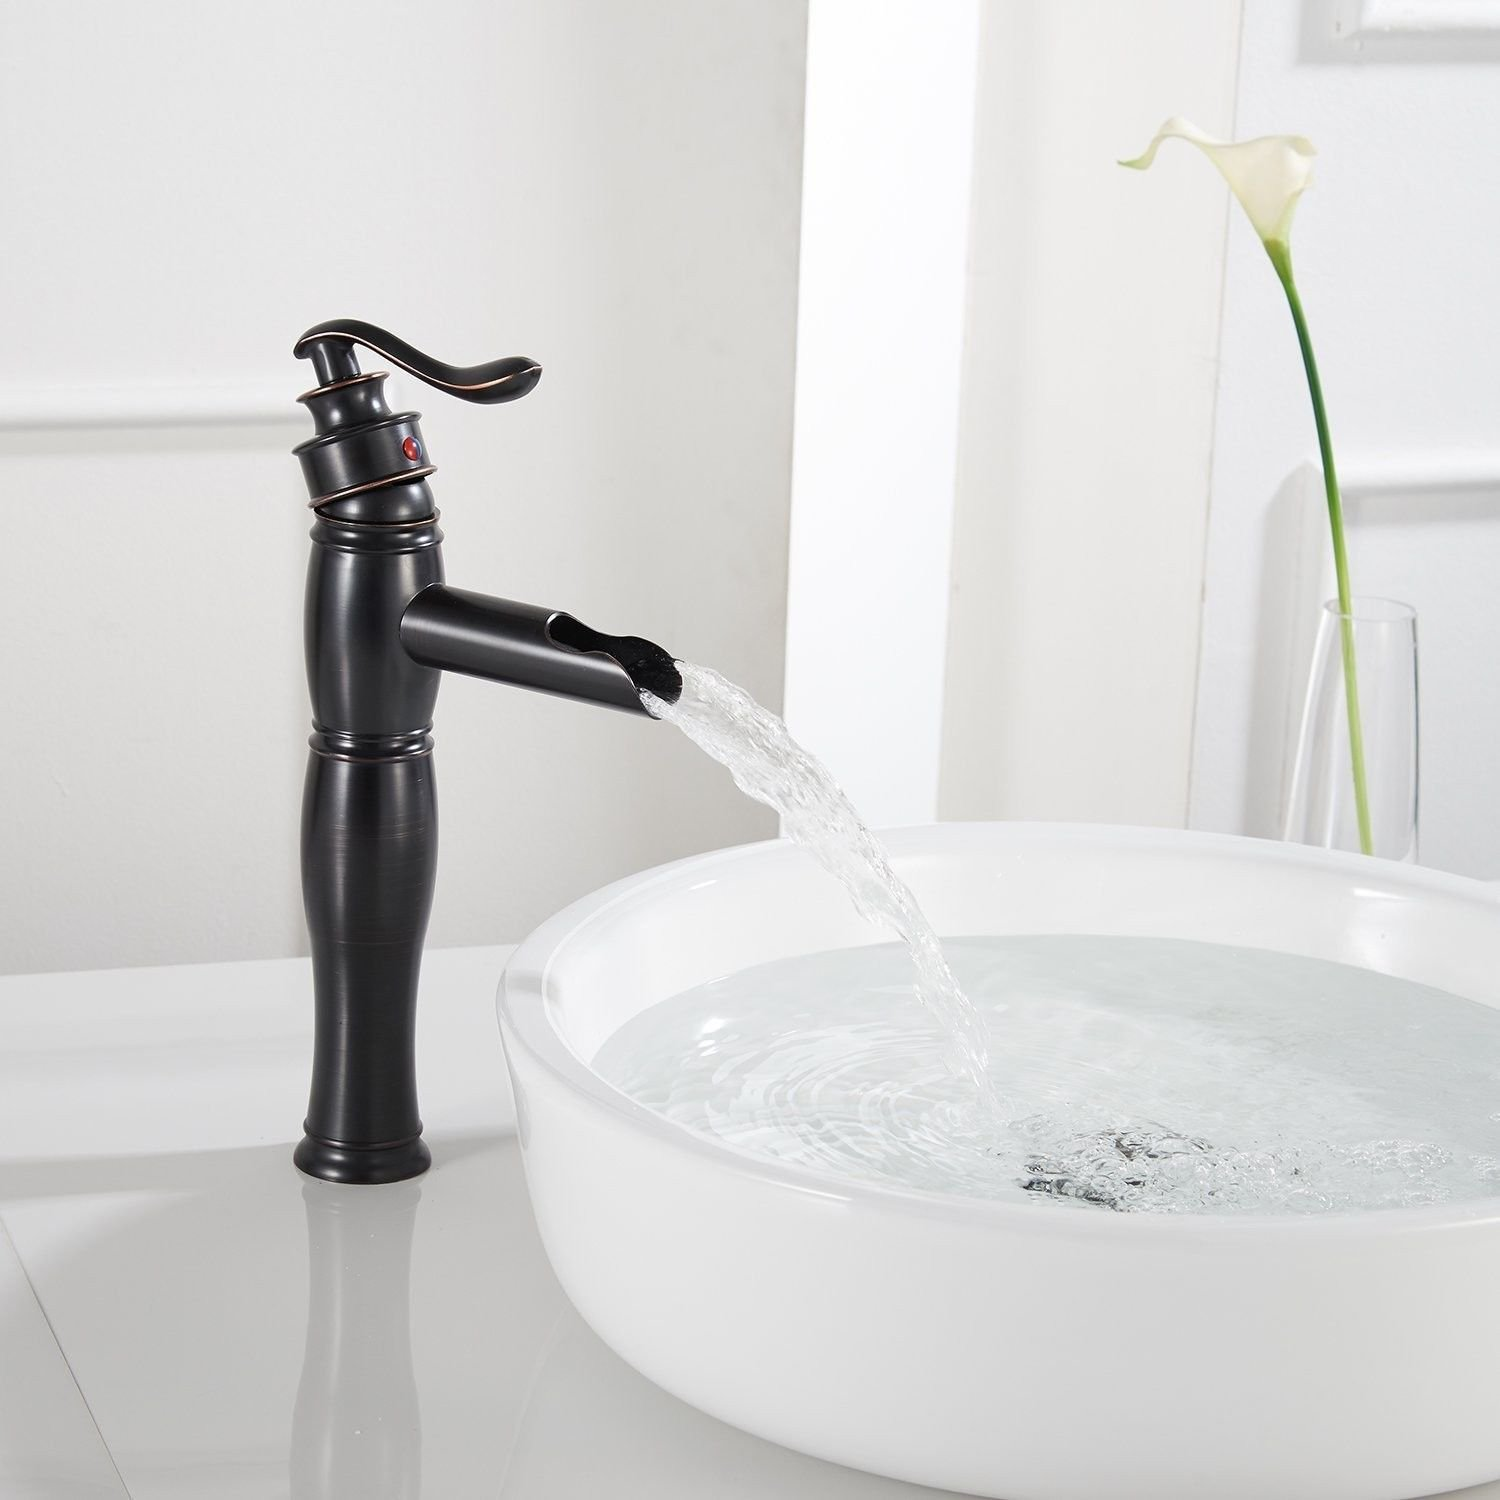 Gyps Faucet Basin Mixer Tap Waterfall Faucet Antique Bathroom Mixer Bar Mixer Shower Set Tap antique bathroom faucet Antique brass single handle one hole ceramic valve cold water spout waterfall bathr